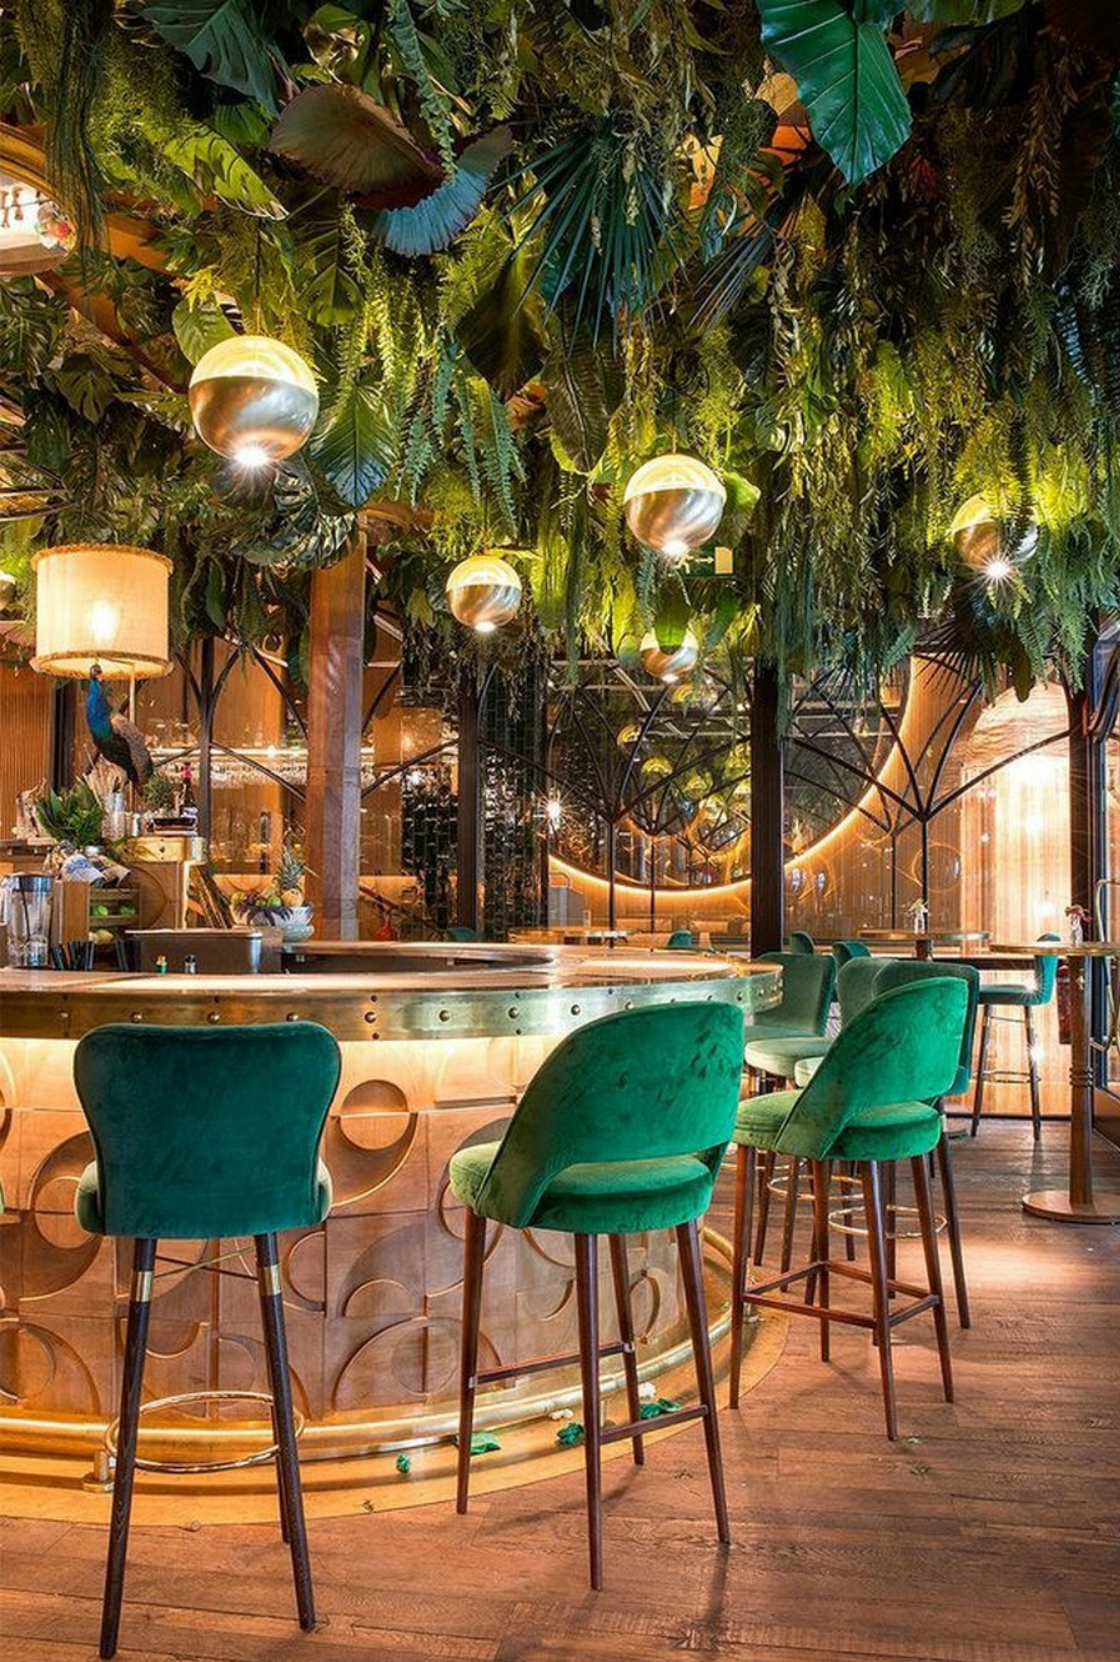 Upholstered Bar Chairs: 10 Inspiring Restaurant Designs